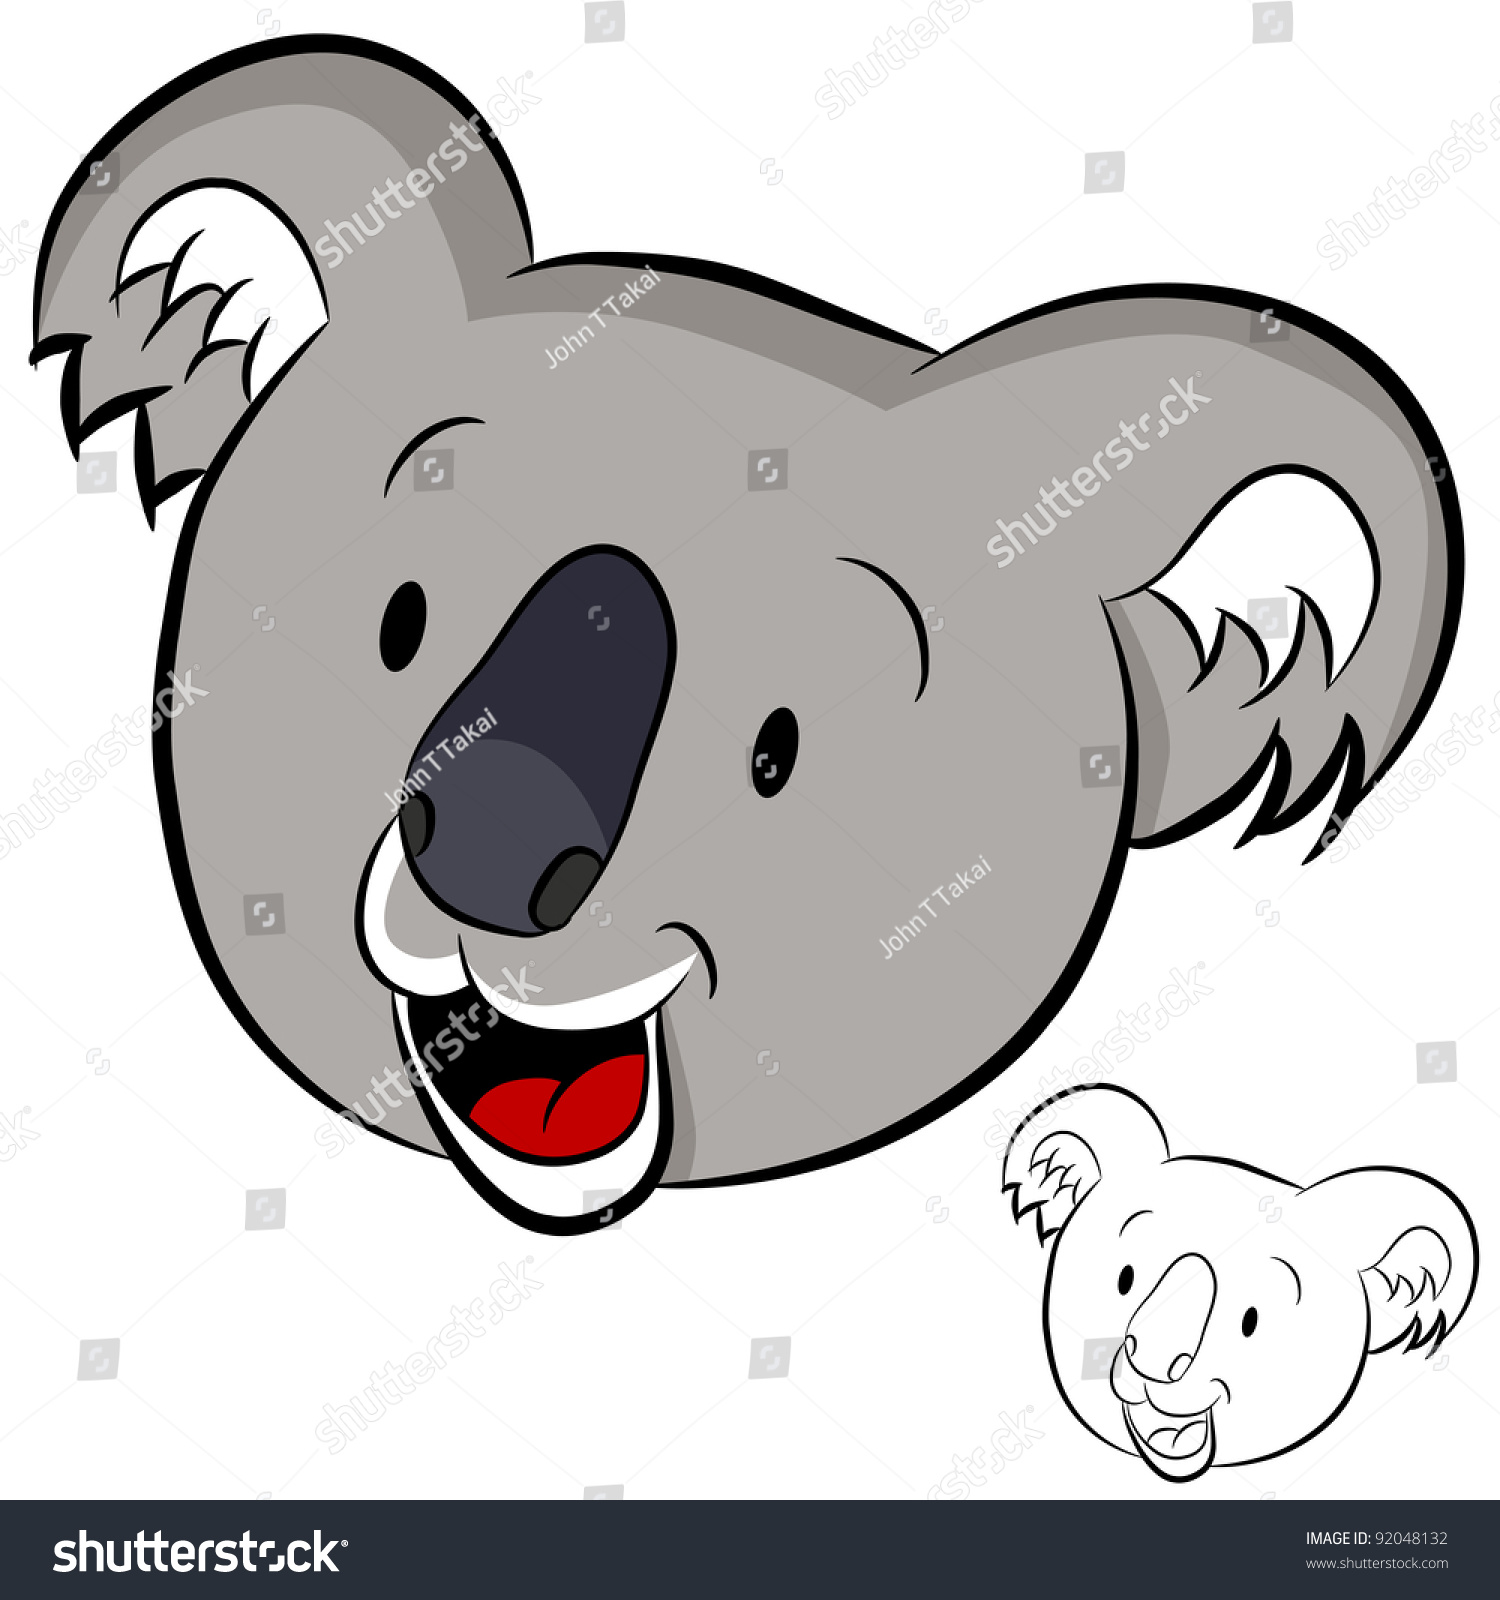 image cartoon koala face stock illustration 92048132 shutterstock